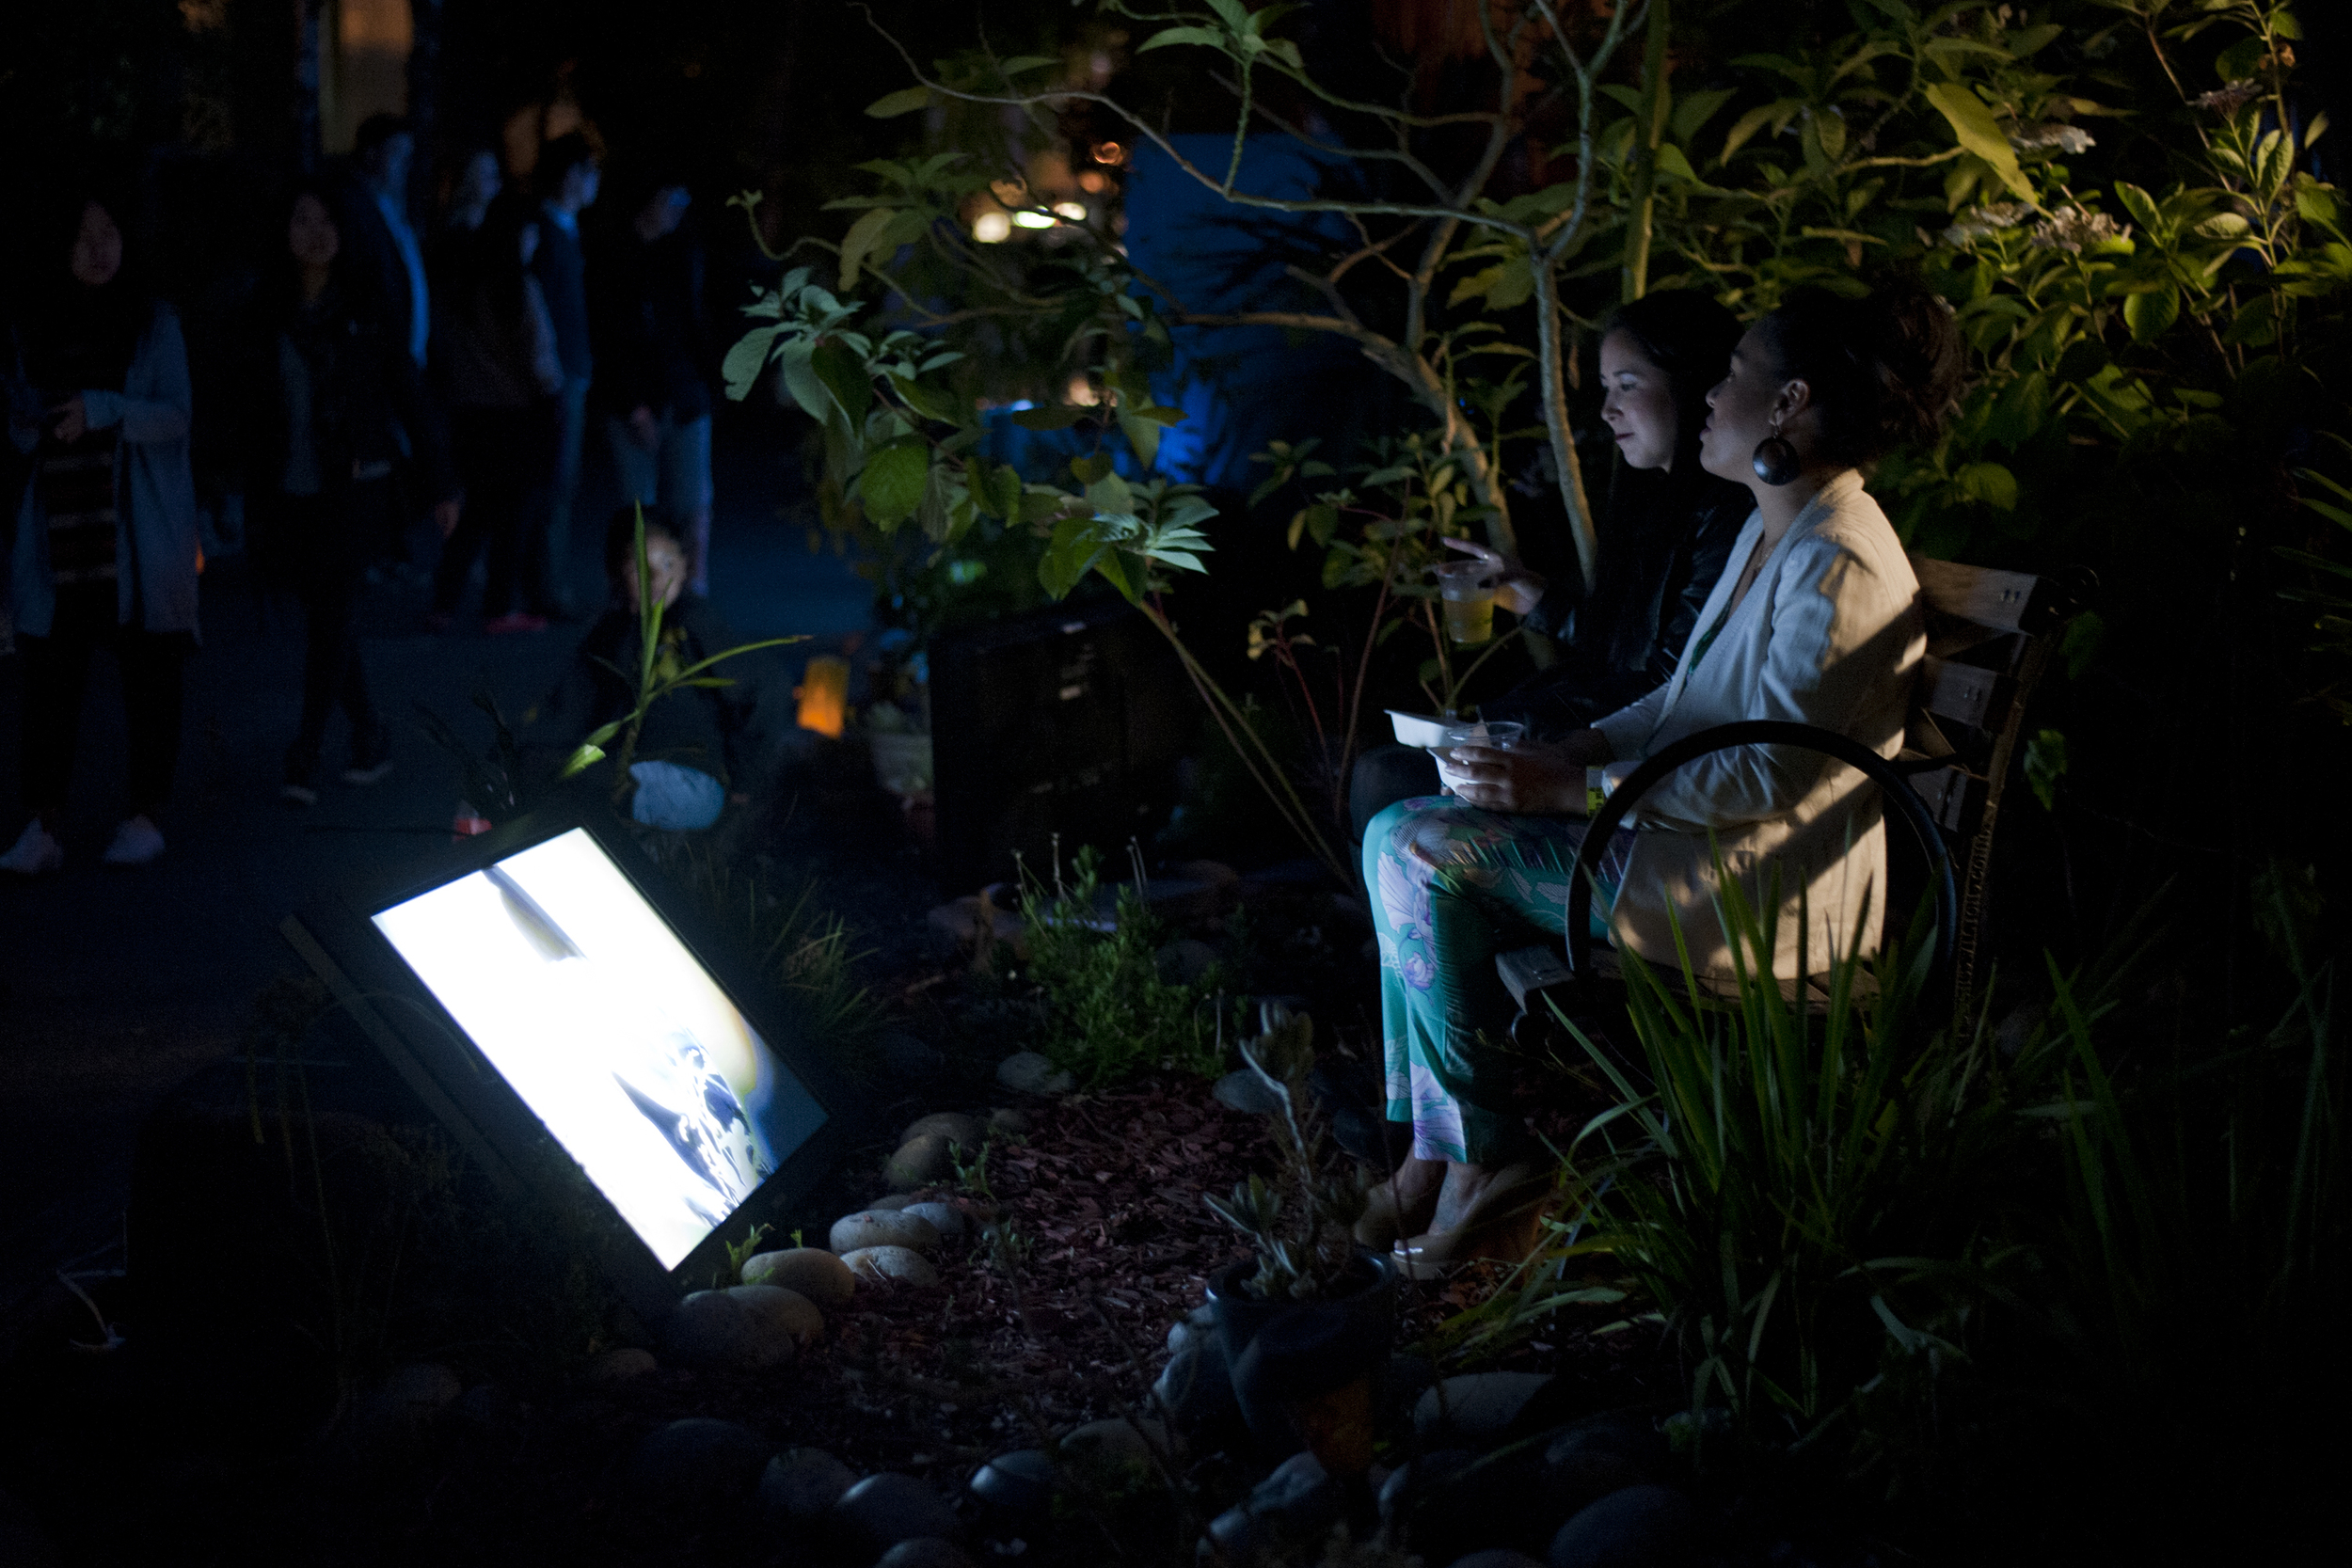 Night Light Multimedia Garden Party 2014_14591401420_o.jpg